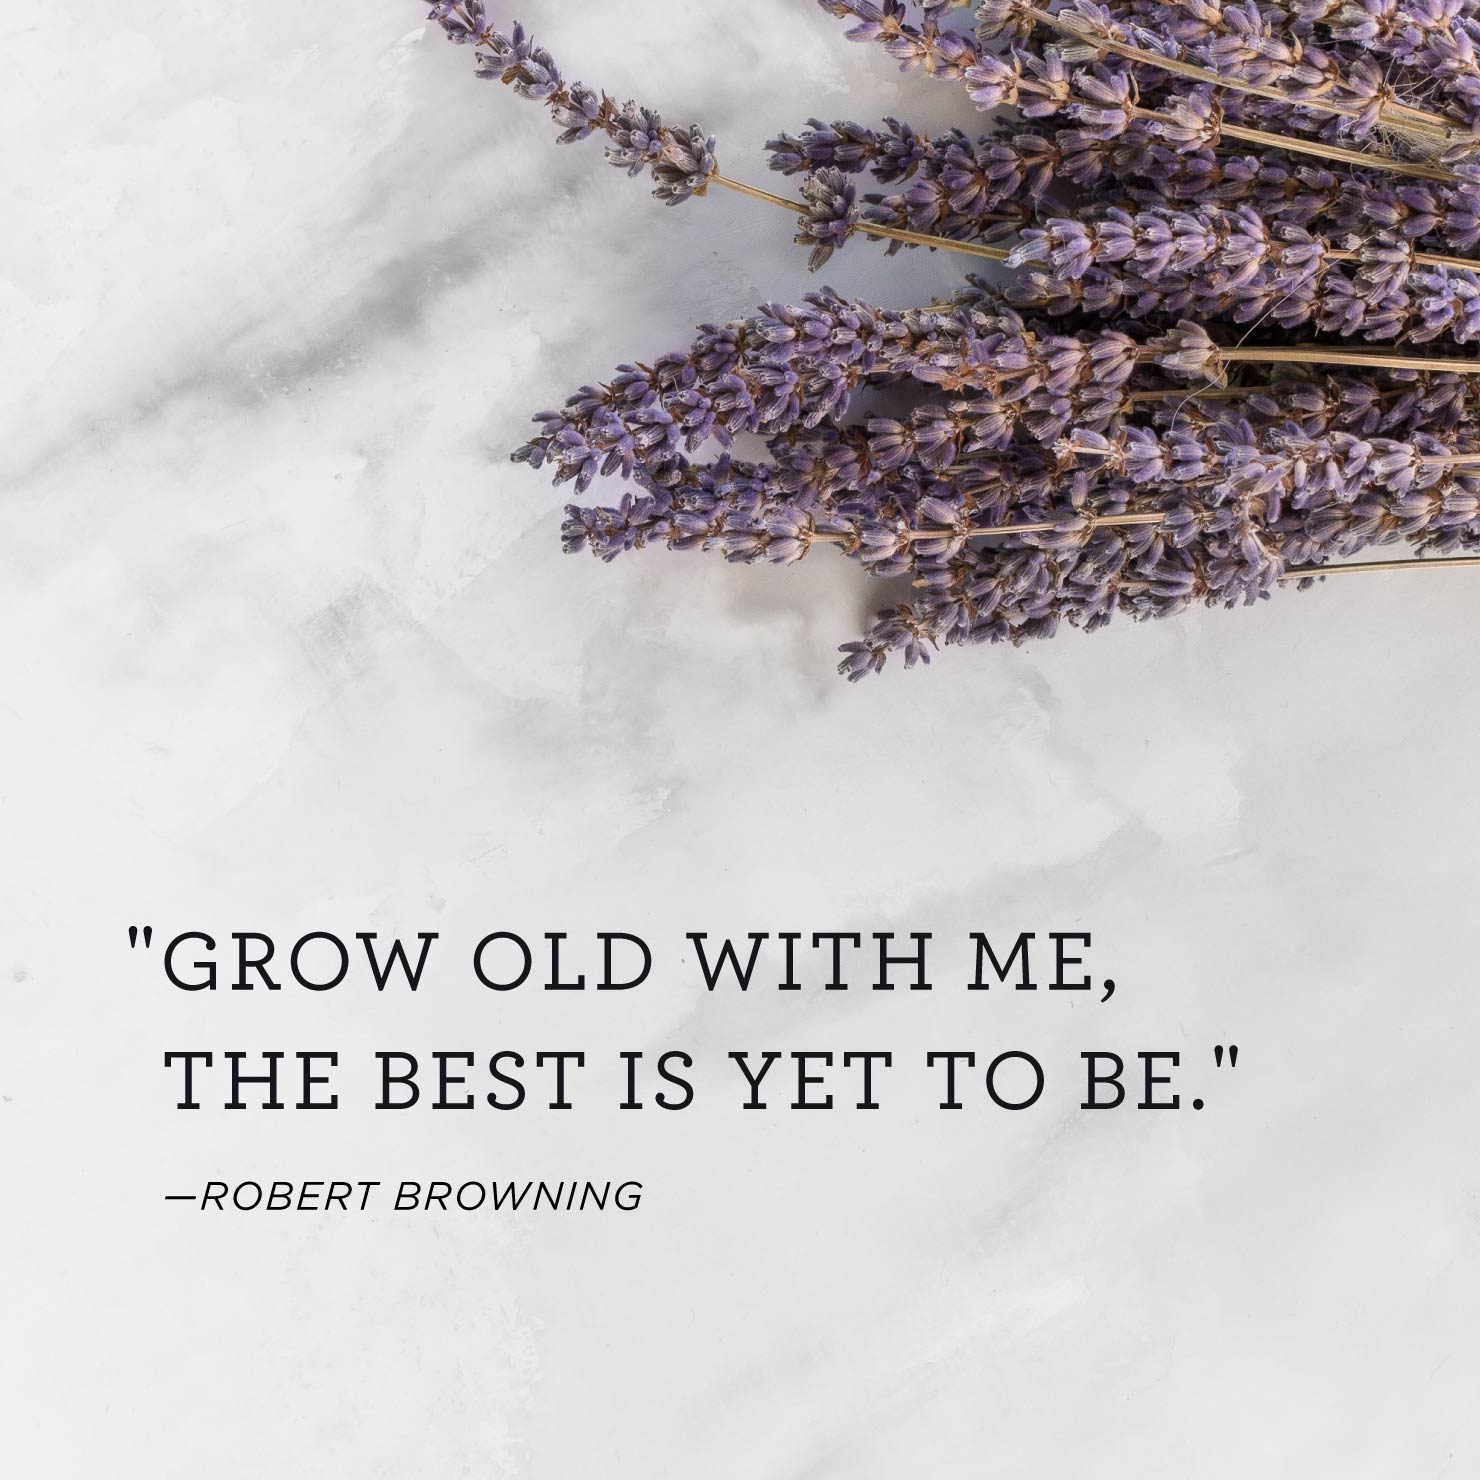 Quote above background image: Grow old with me, the best is yet to be. - Robert Browning